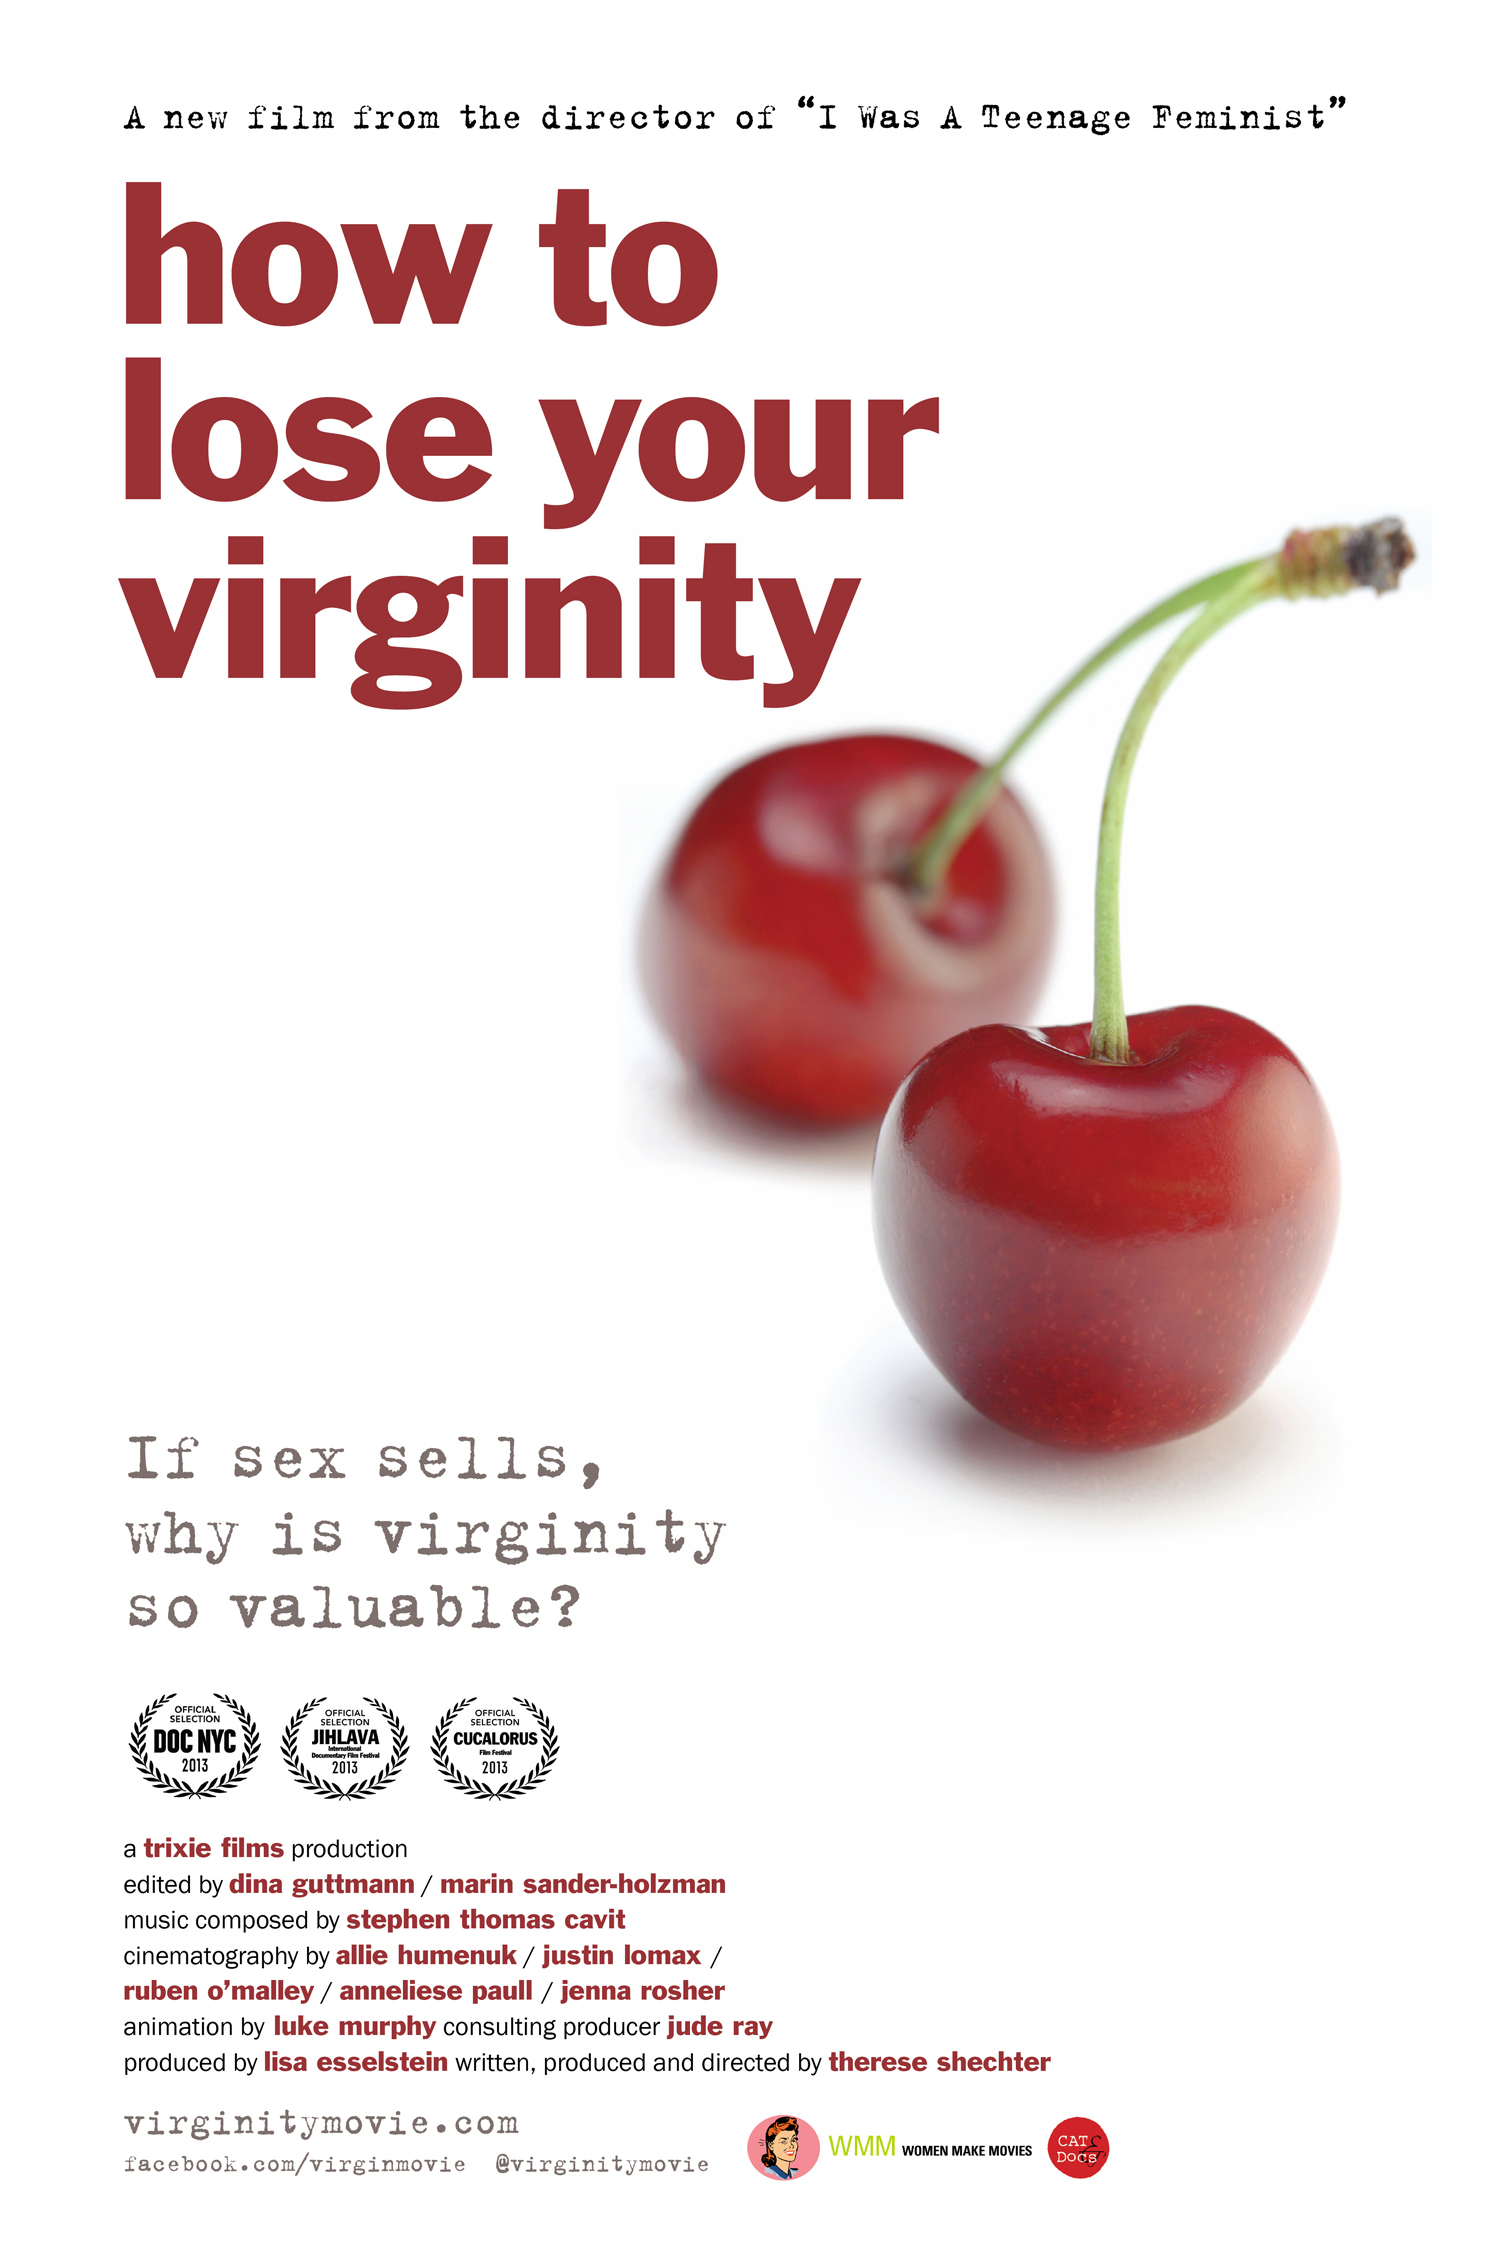 Experience storys of losing your virginity